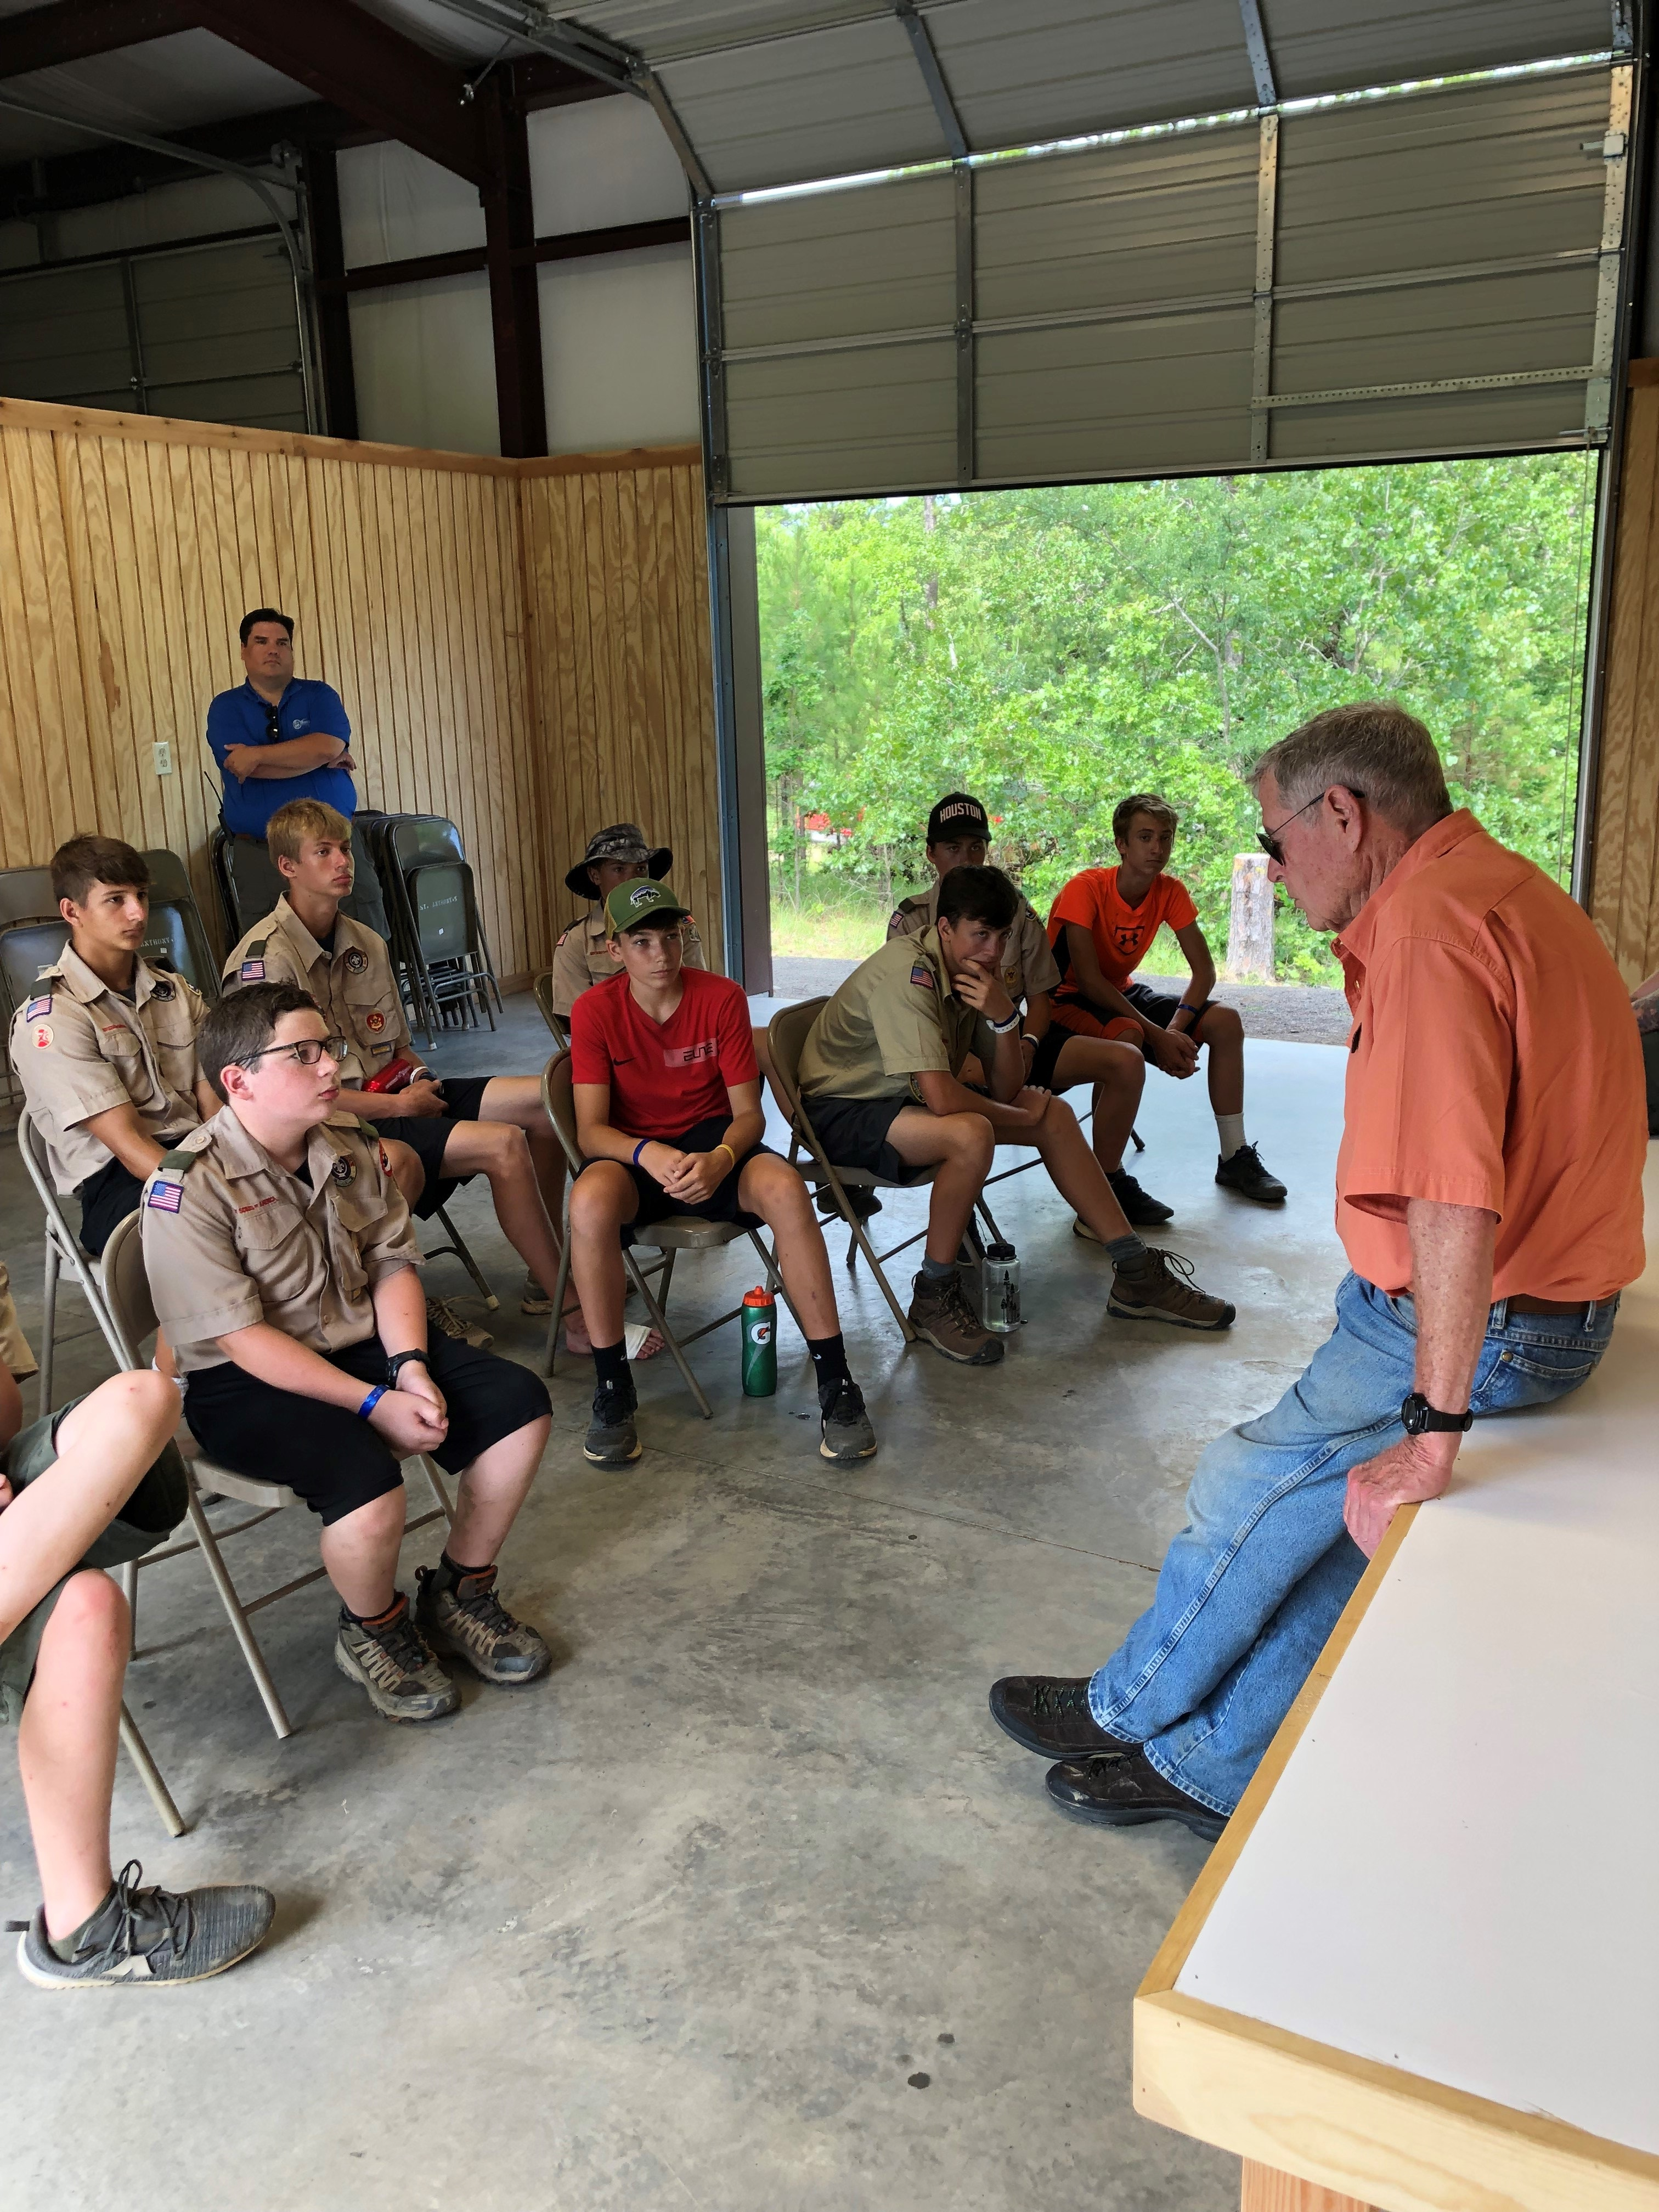 Inhofe Visits with Boy Scouts at Hale Scout Reservation 1